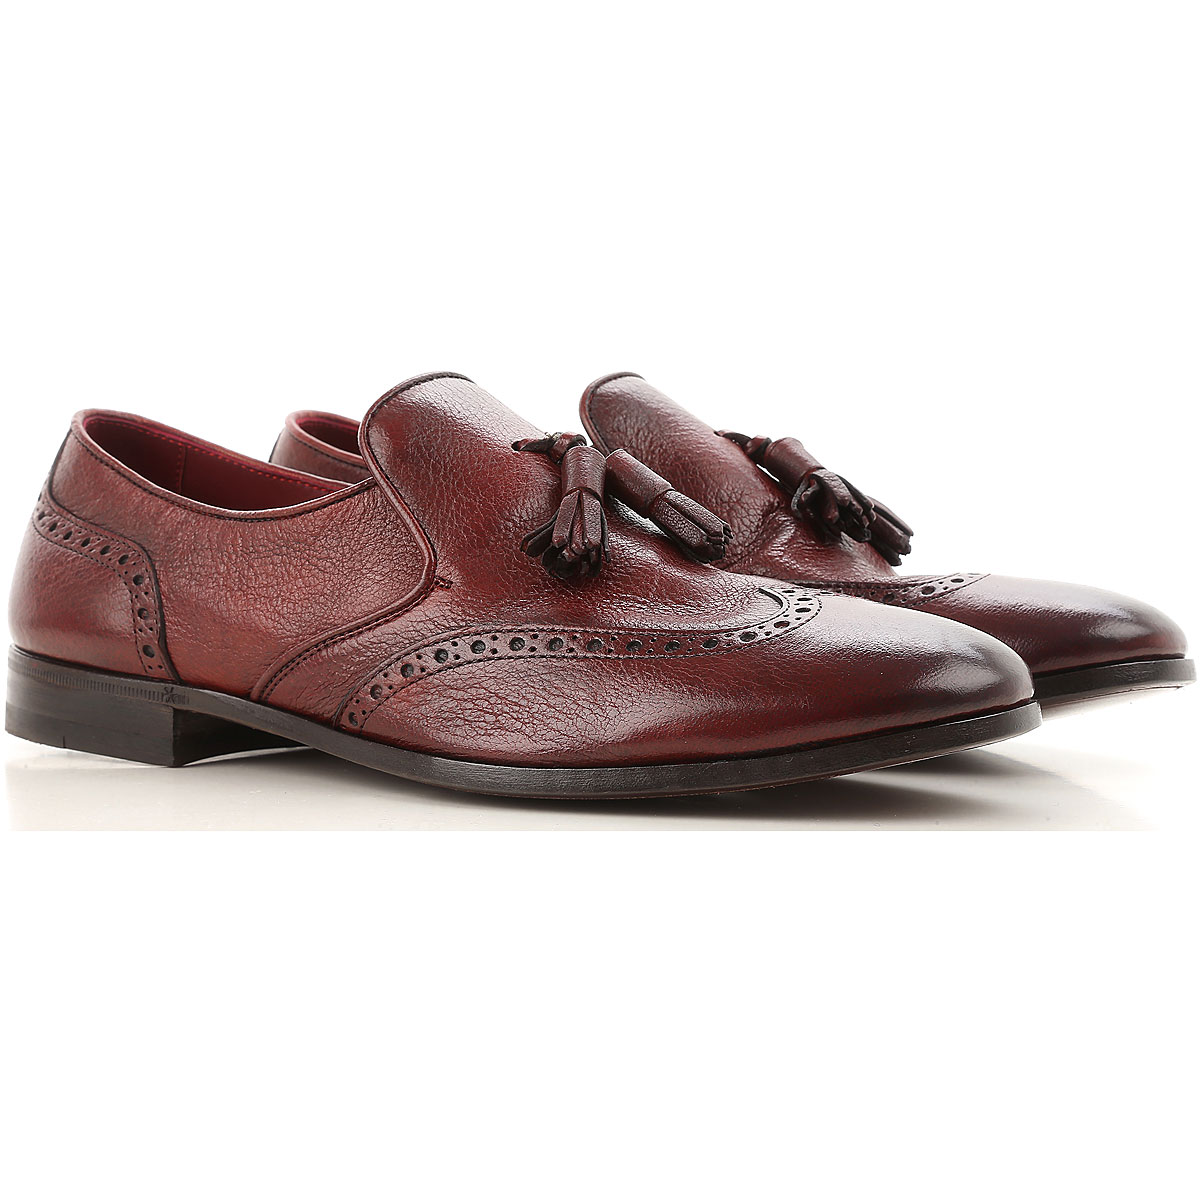 Image of Henderson Loafers for Men, Bordeaux, Leather, 2017, 10 10.5 8 8.5 9 9.5